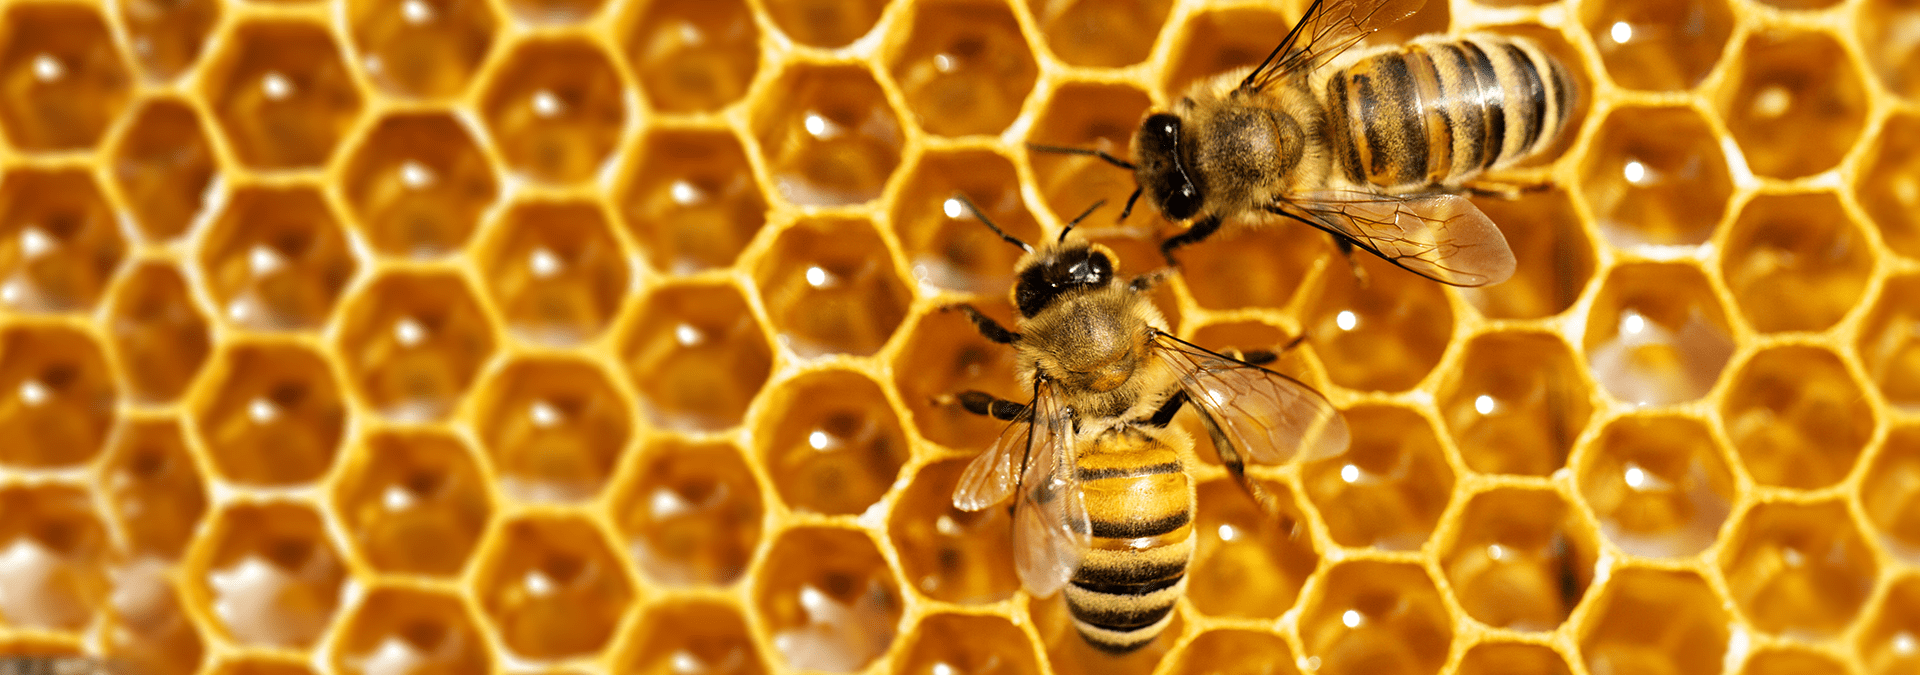 two honey bees on a comb outside of a home in middleburg florida